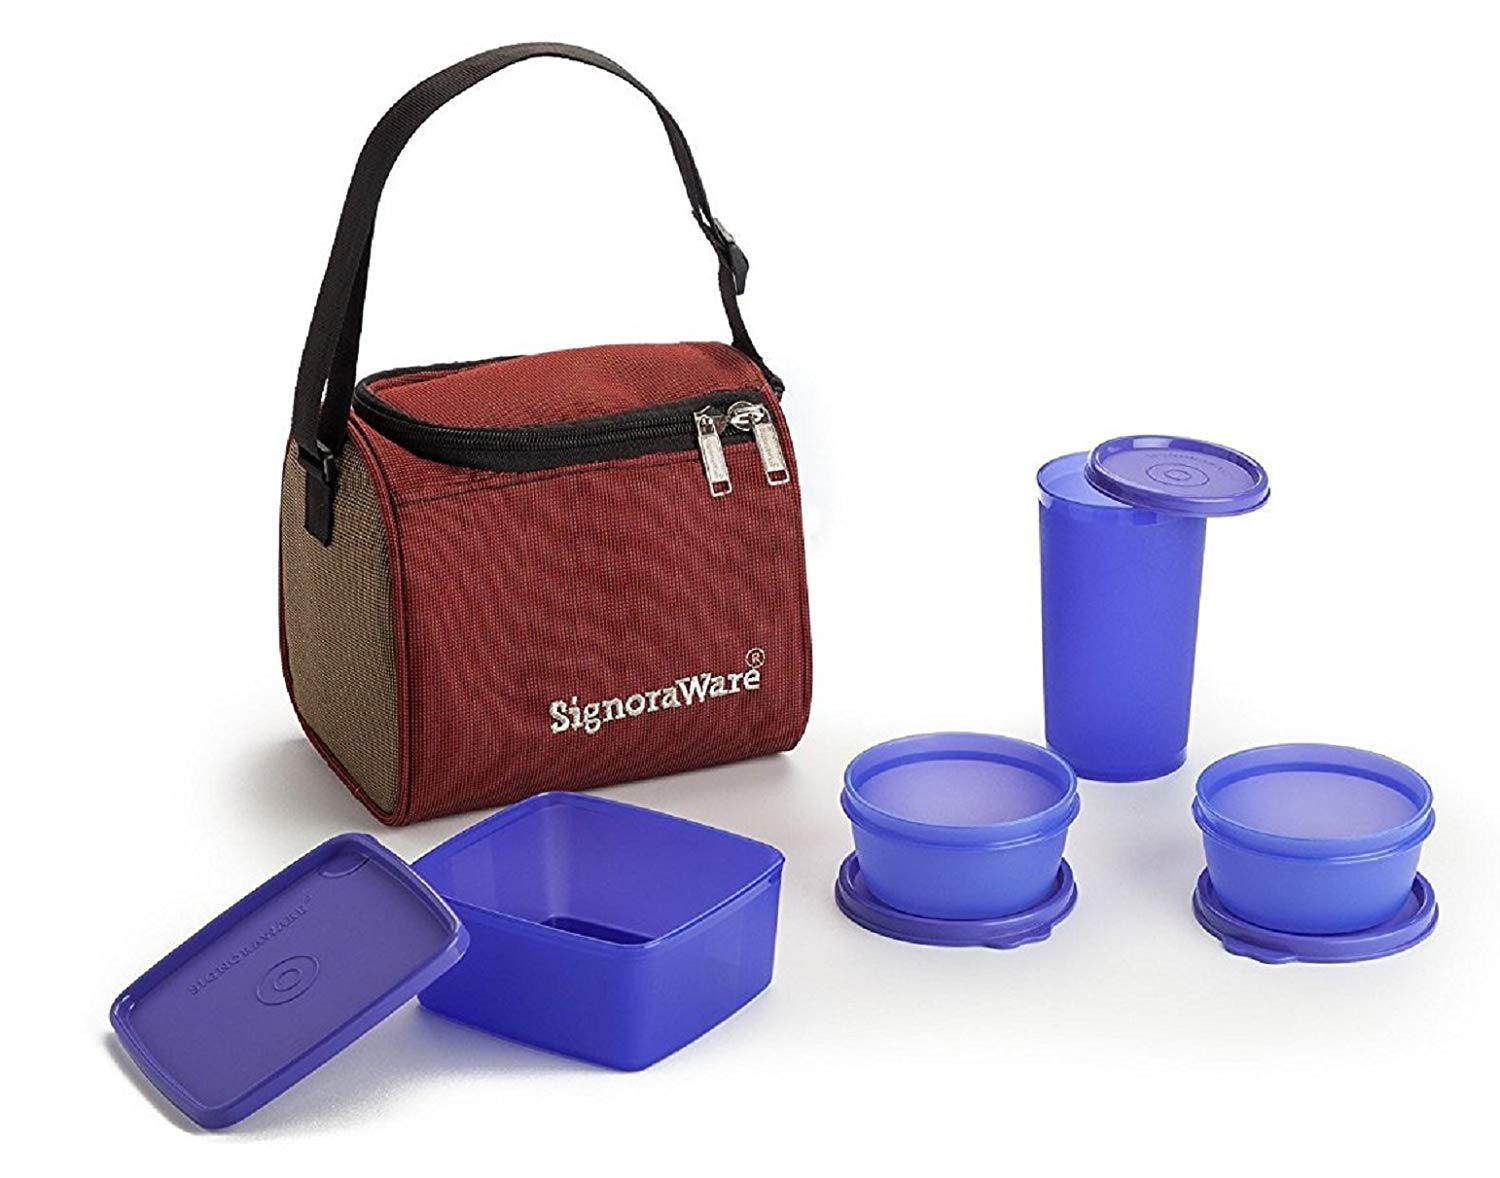 Signoraware Best Lunch Box